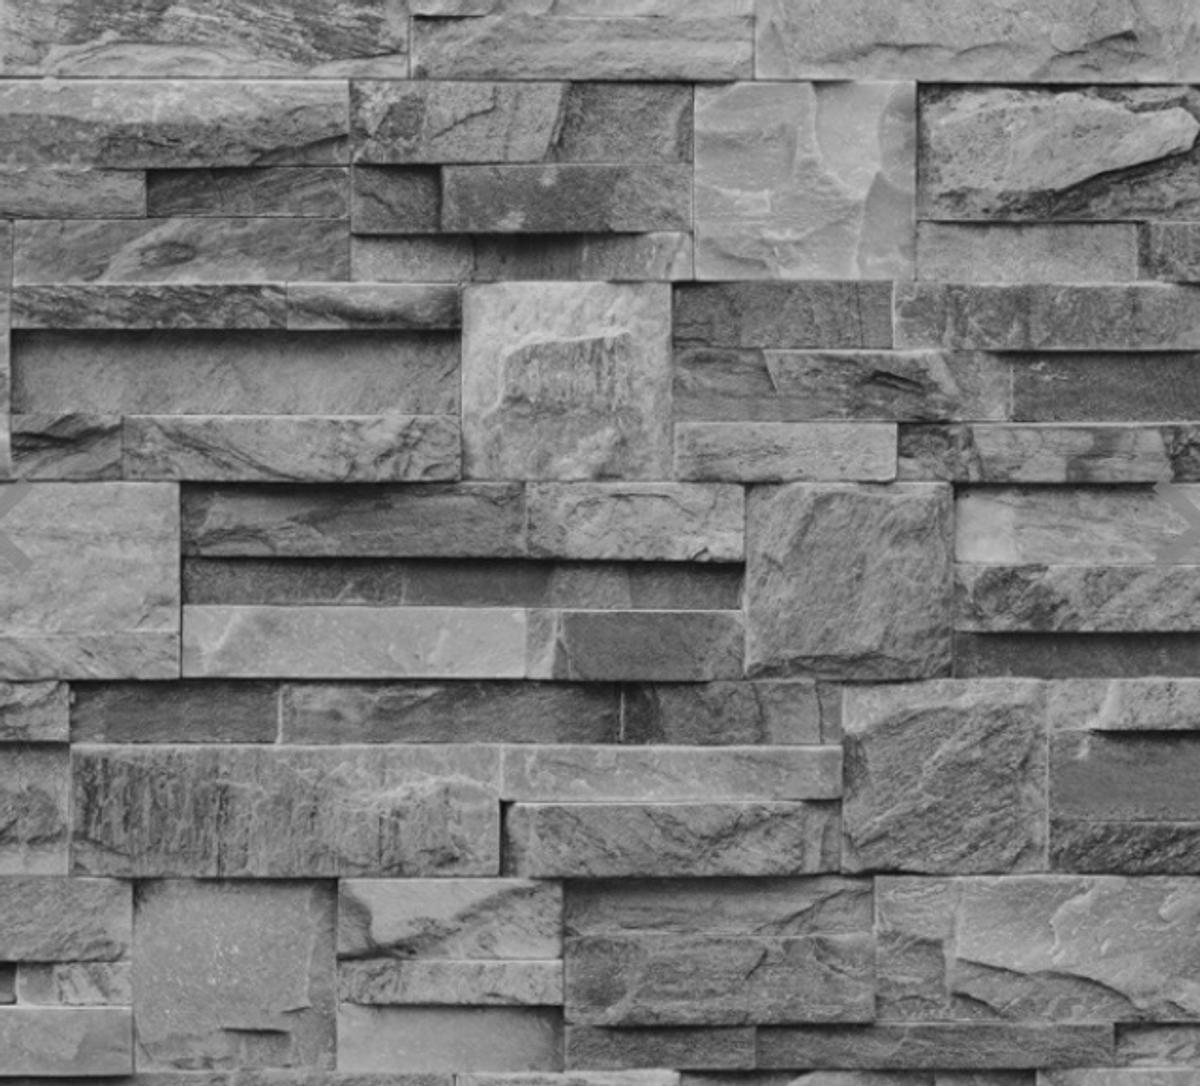 Grey Slate Brick Effect Wallpaper In E16 Newham For 5 00 For Sale Shpock